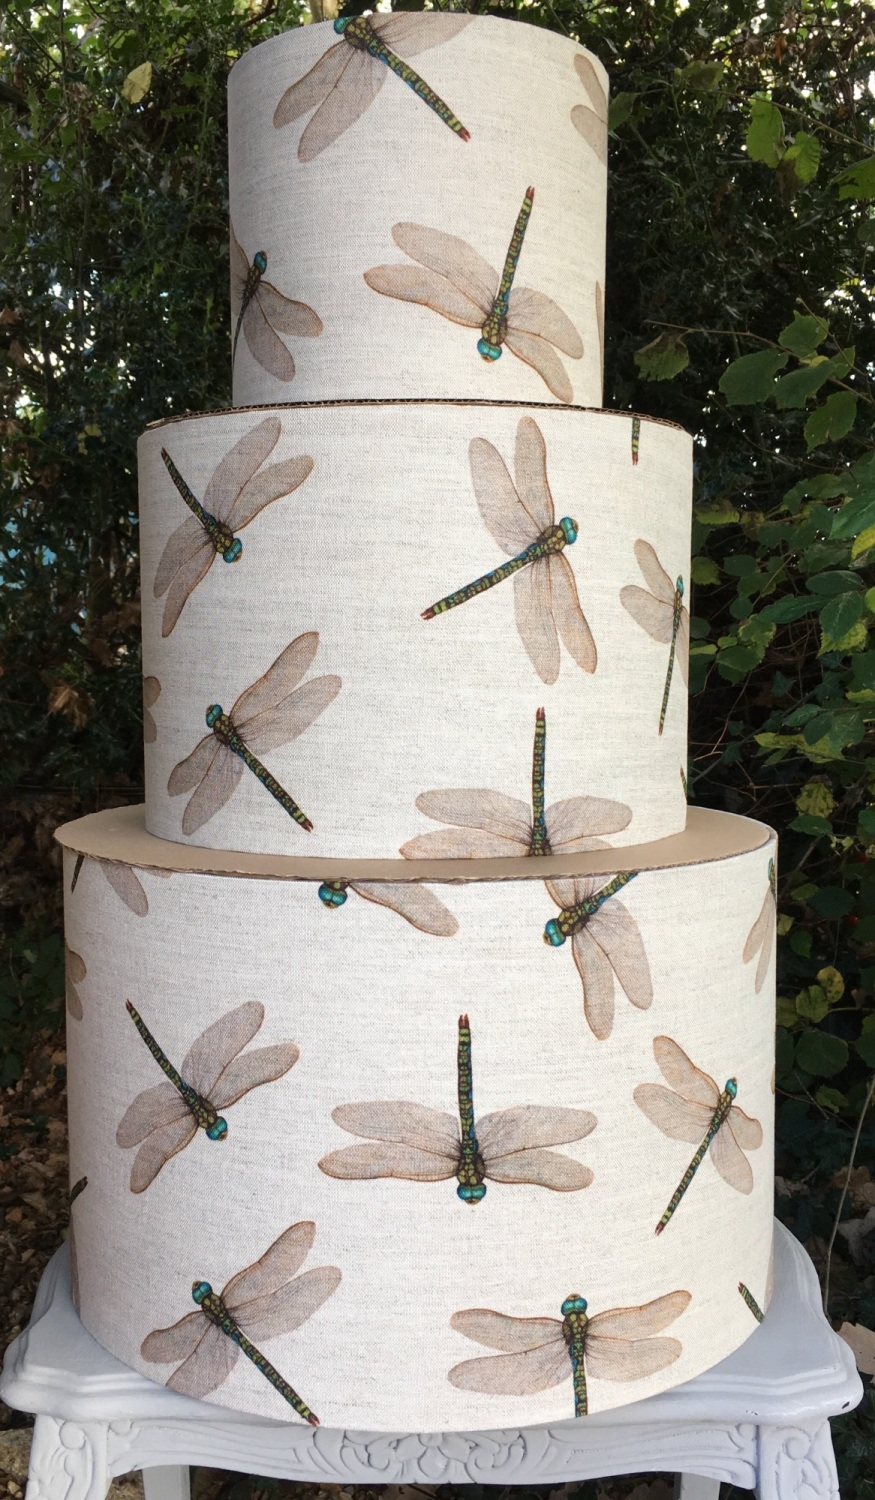 Lampshades- Dragonfly Swarm